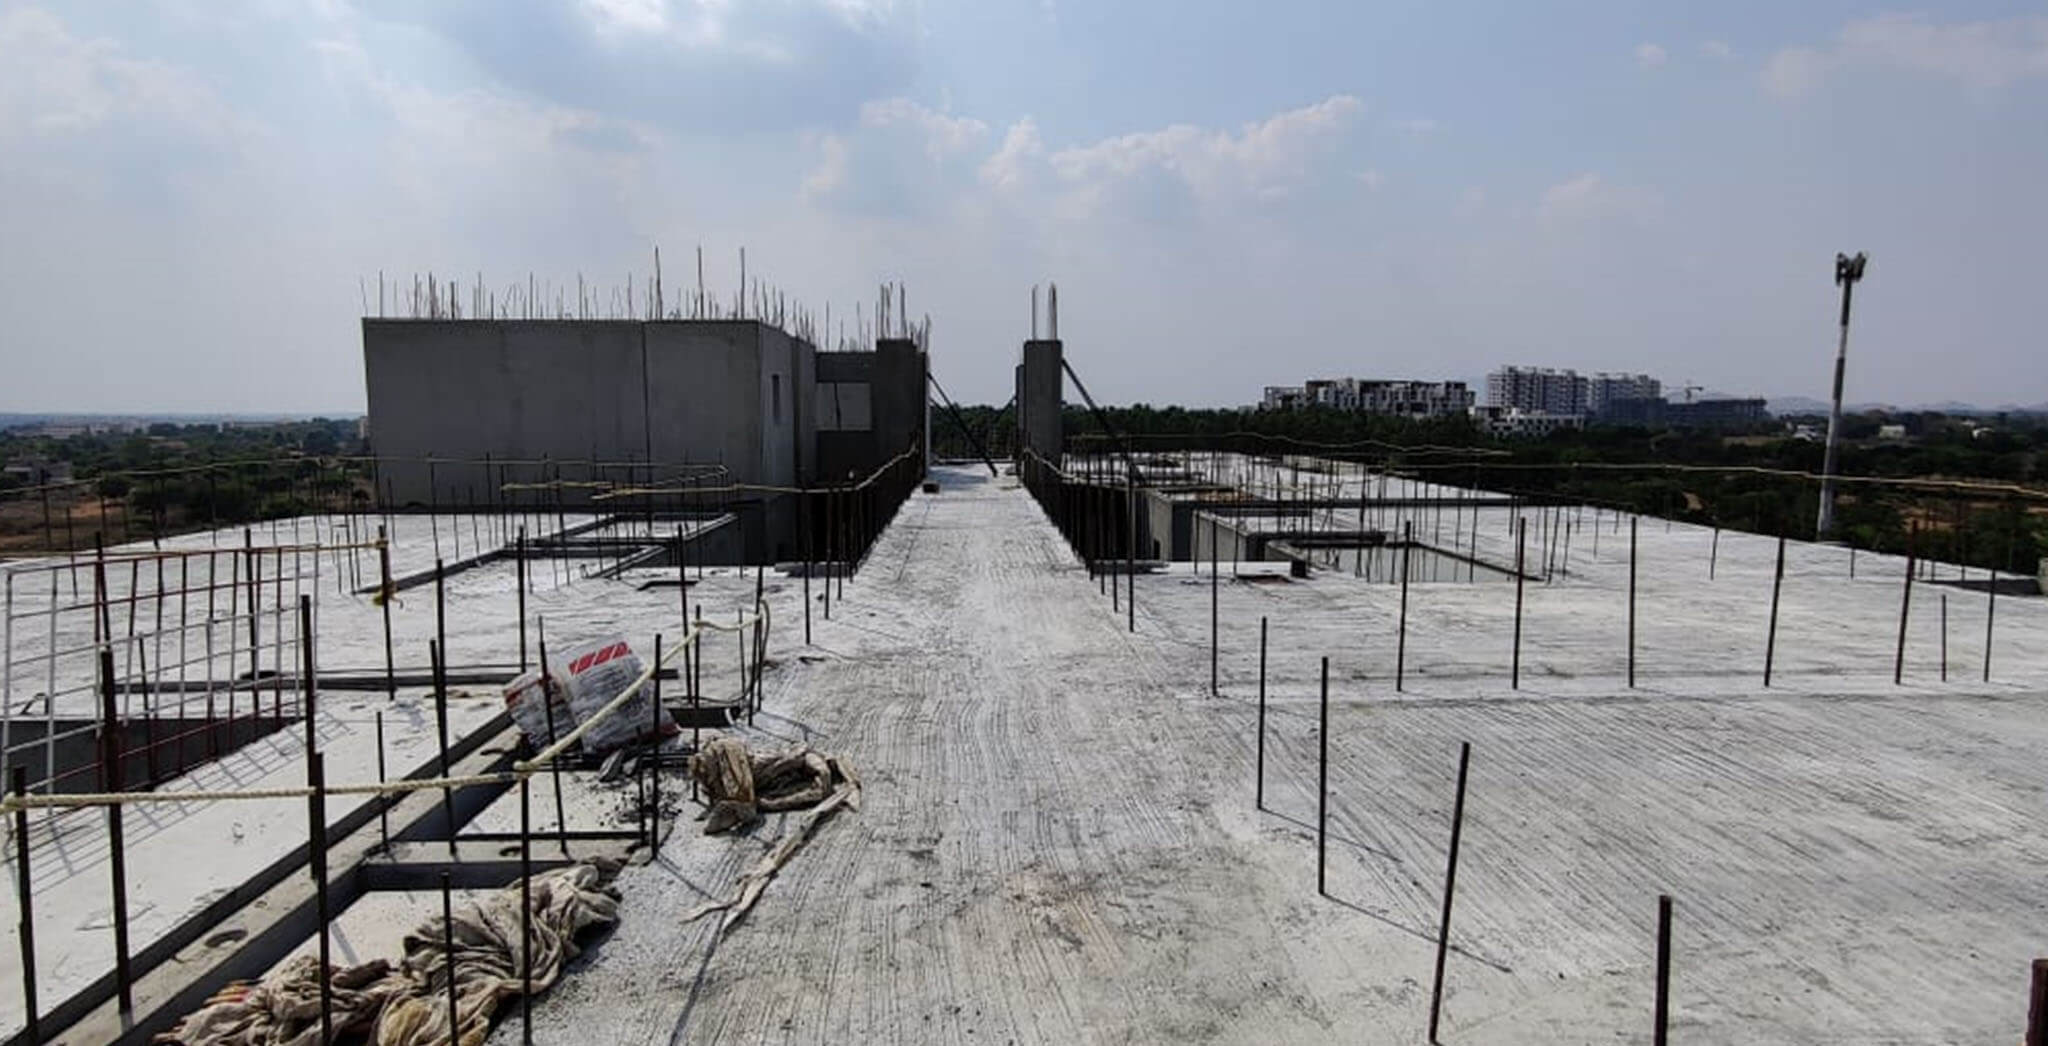 Apr 2021 - C wing: On commencement of seventh floor slab